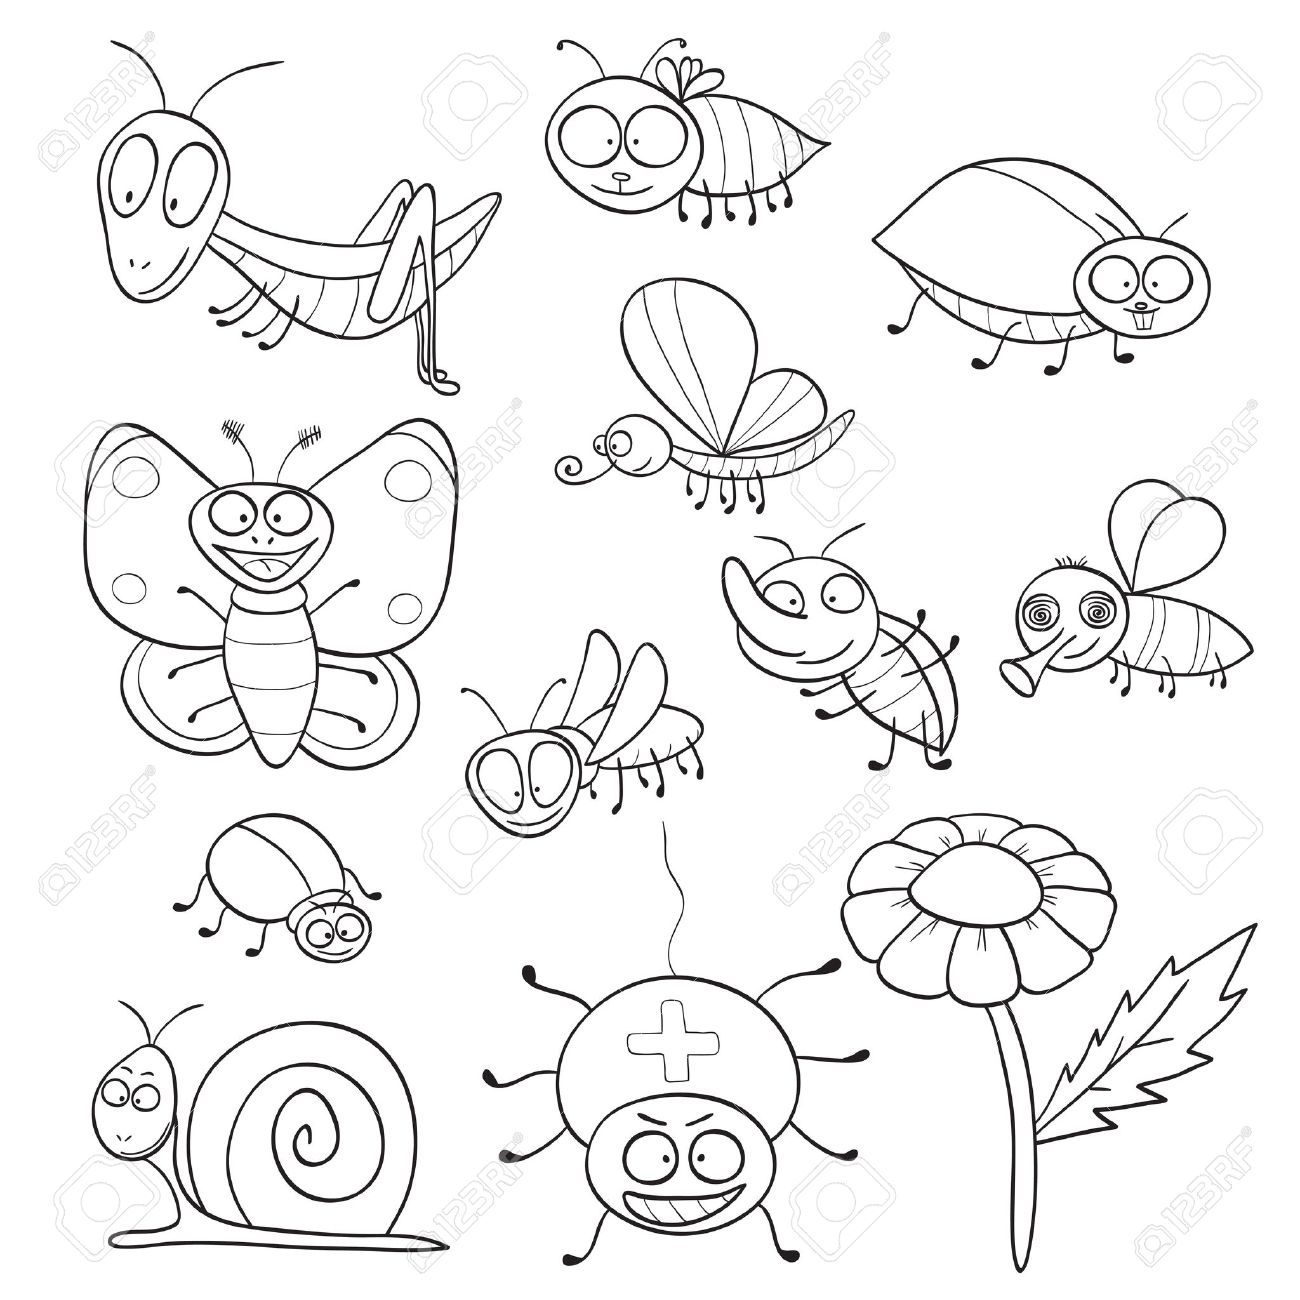 Coloring pages insects - Outlined Cute Cartoon Insects For Coloring Book Vector Illustration Stock Vector 13878678